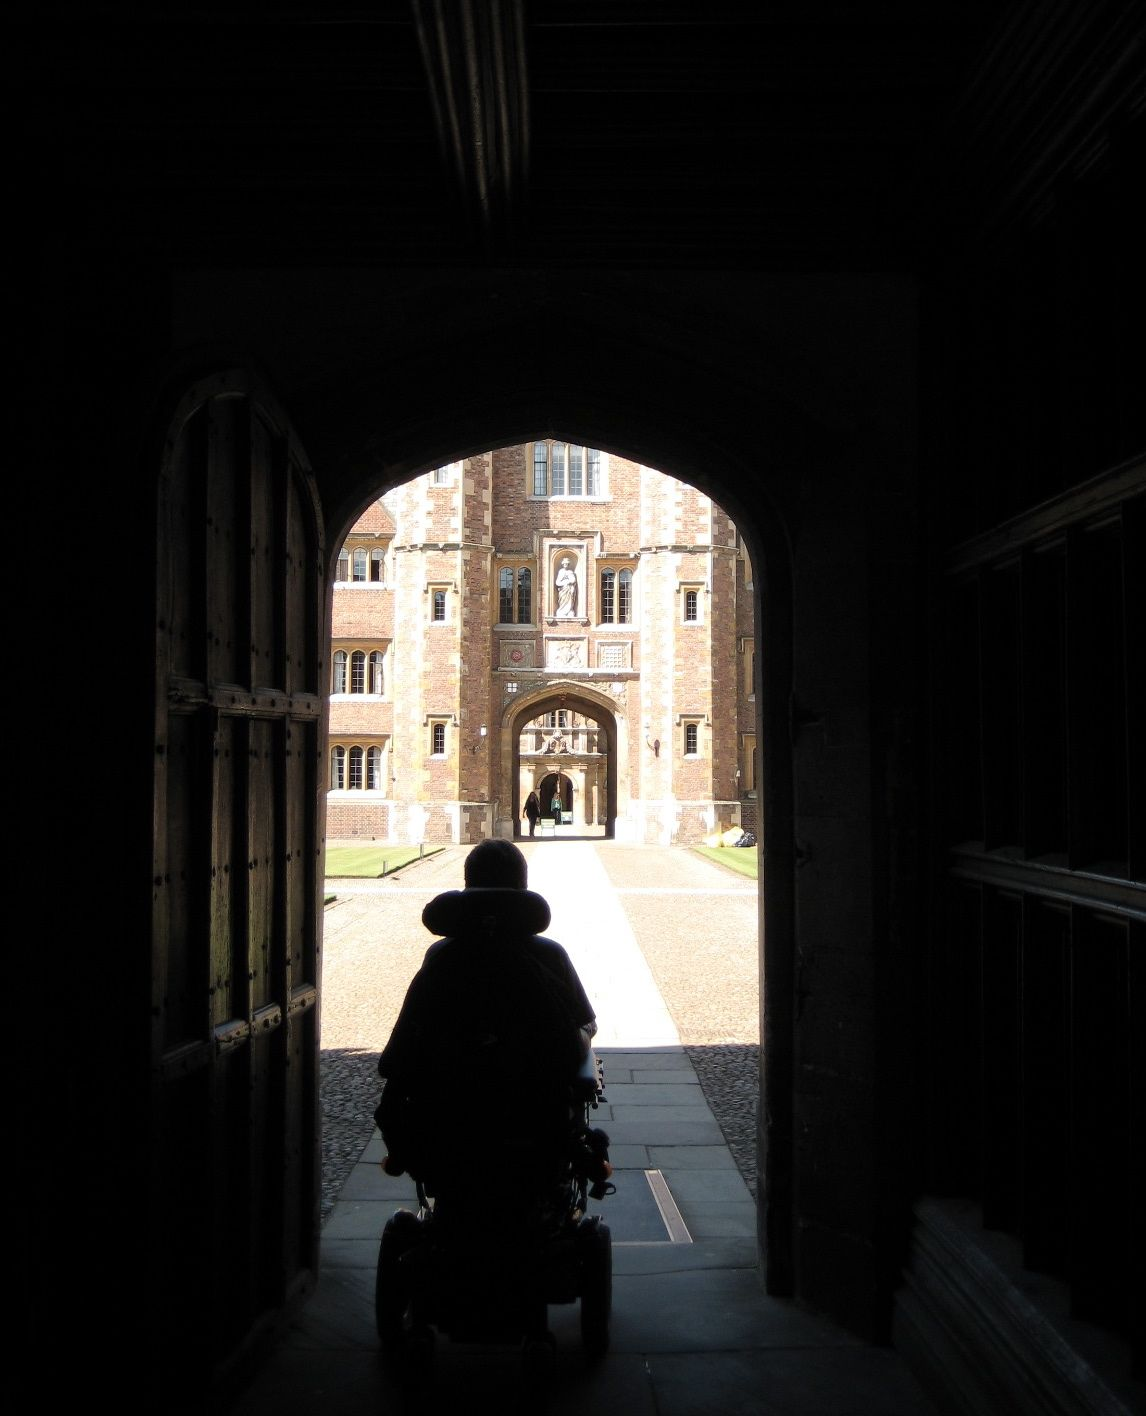 Esther entering King's College